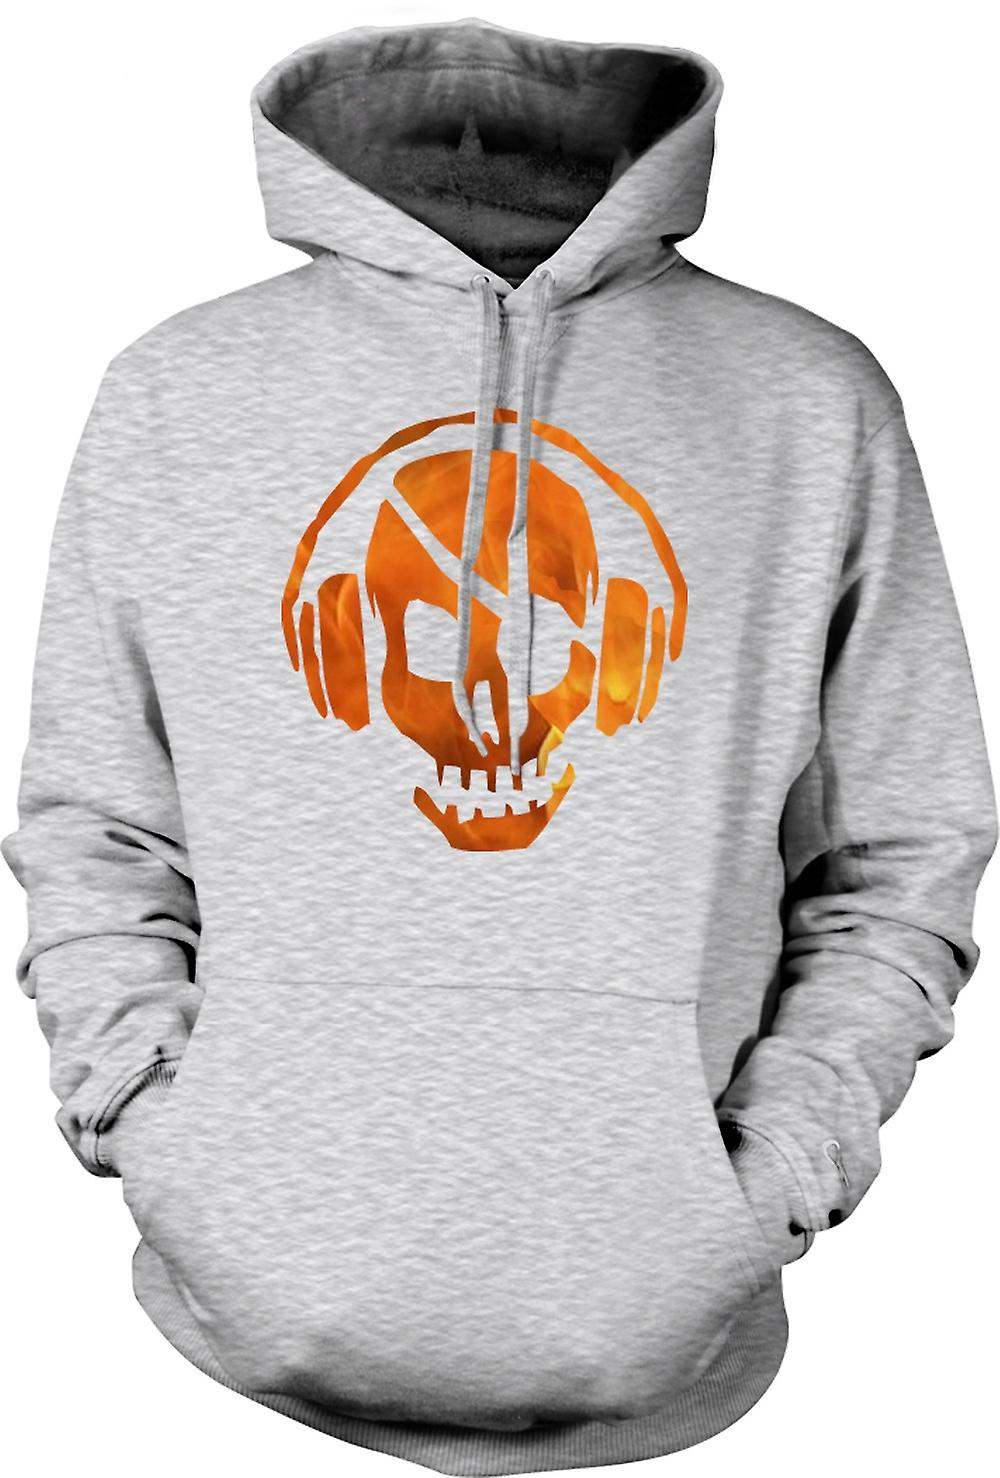 Mens Hoodie - Pirate DJ - Anti piraterie